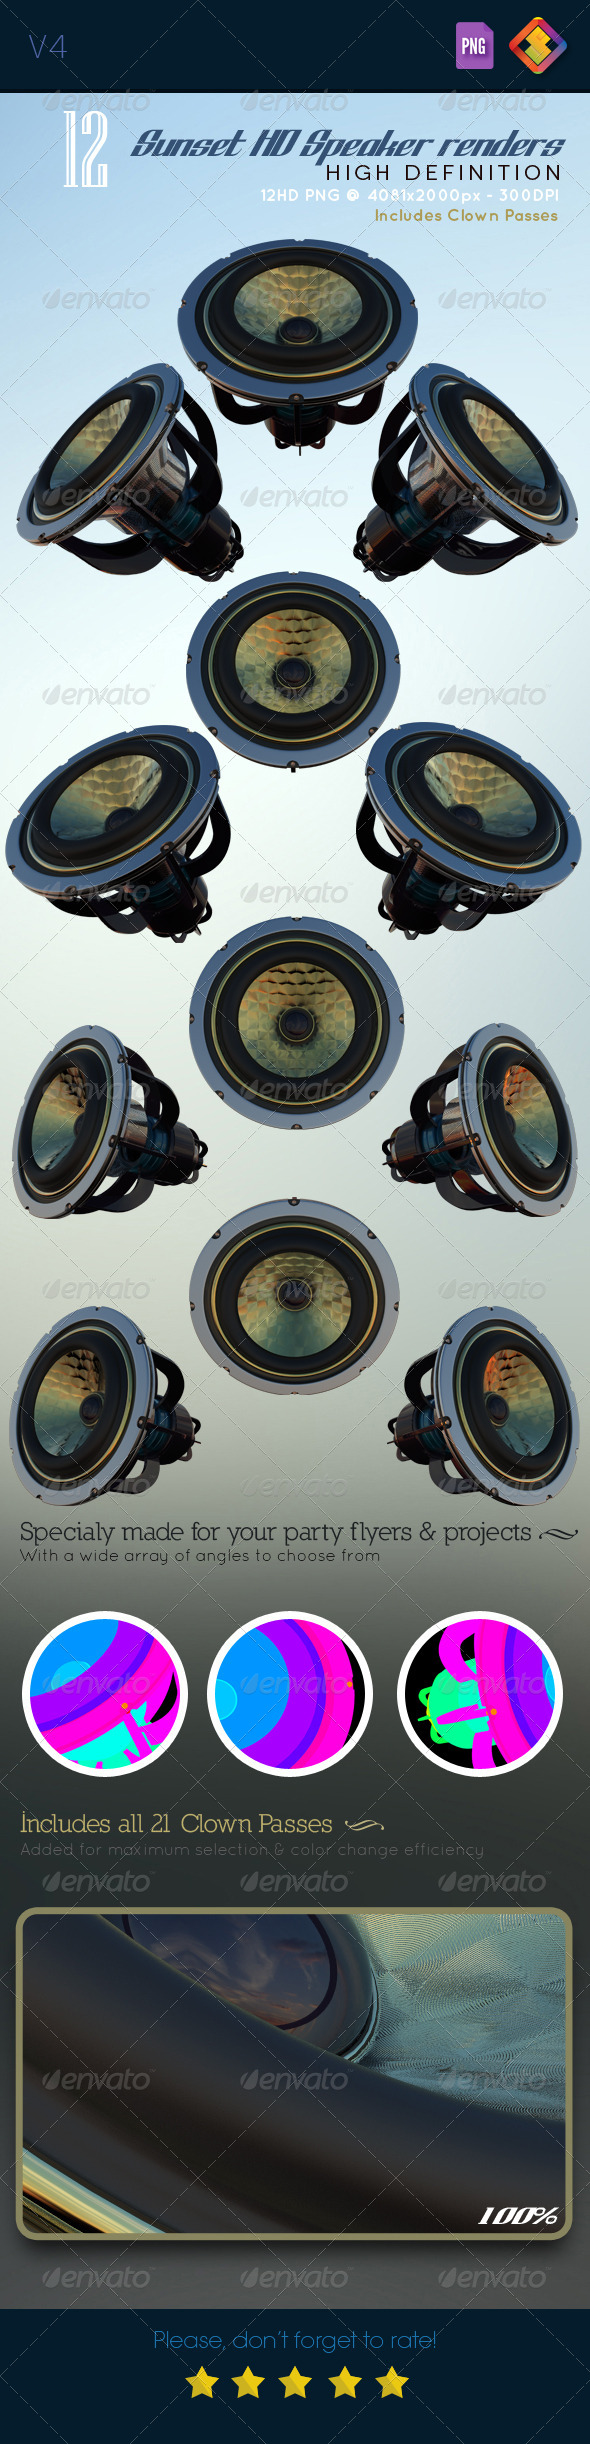 GraphicRiver Sunset HD Speaker Renders V4 6519239